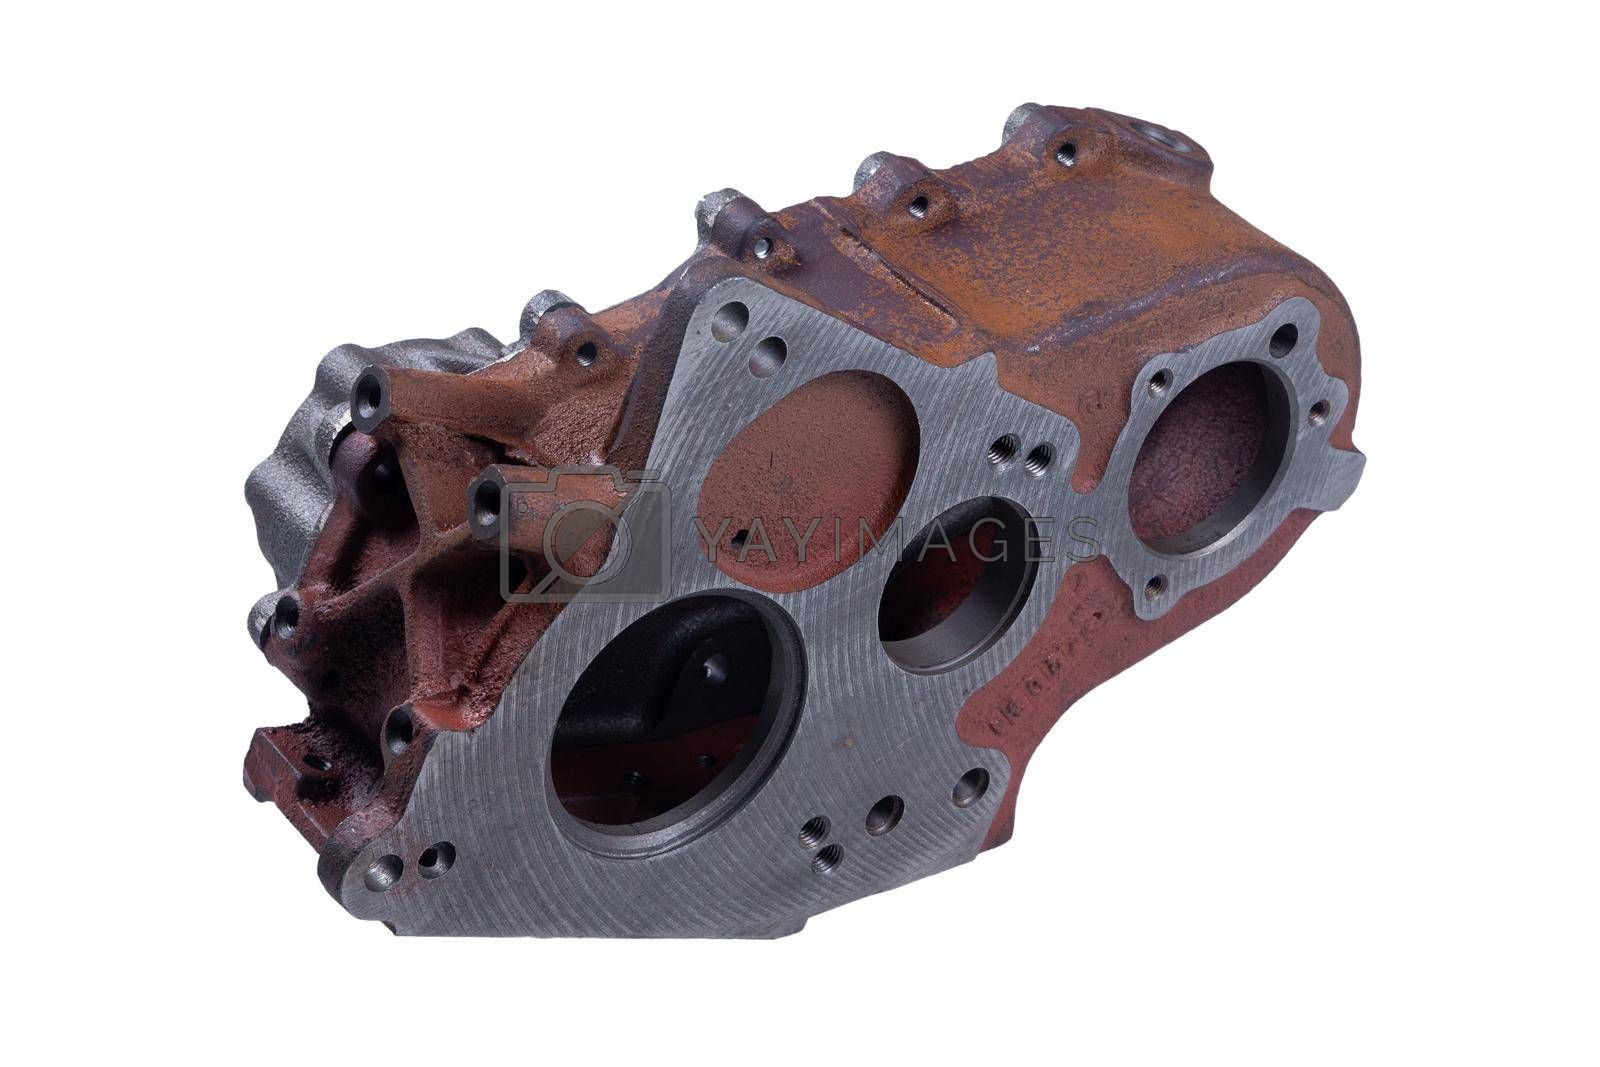 new transfer case for car, isolated on white background